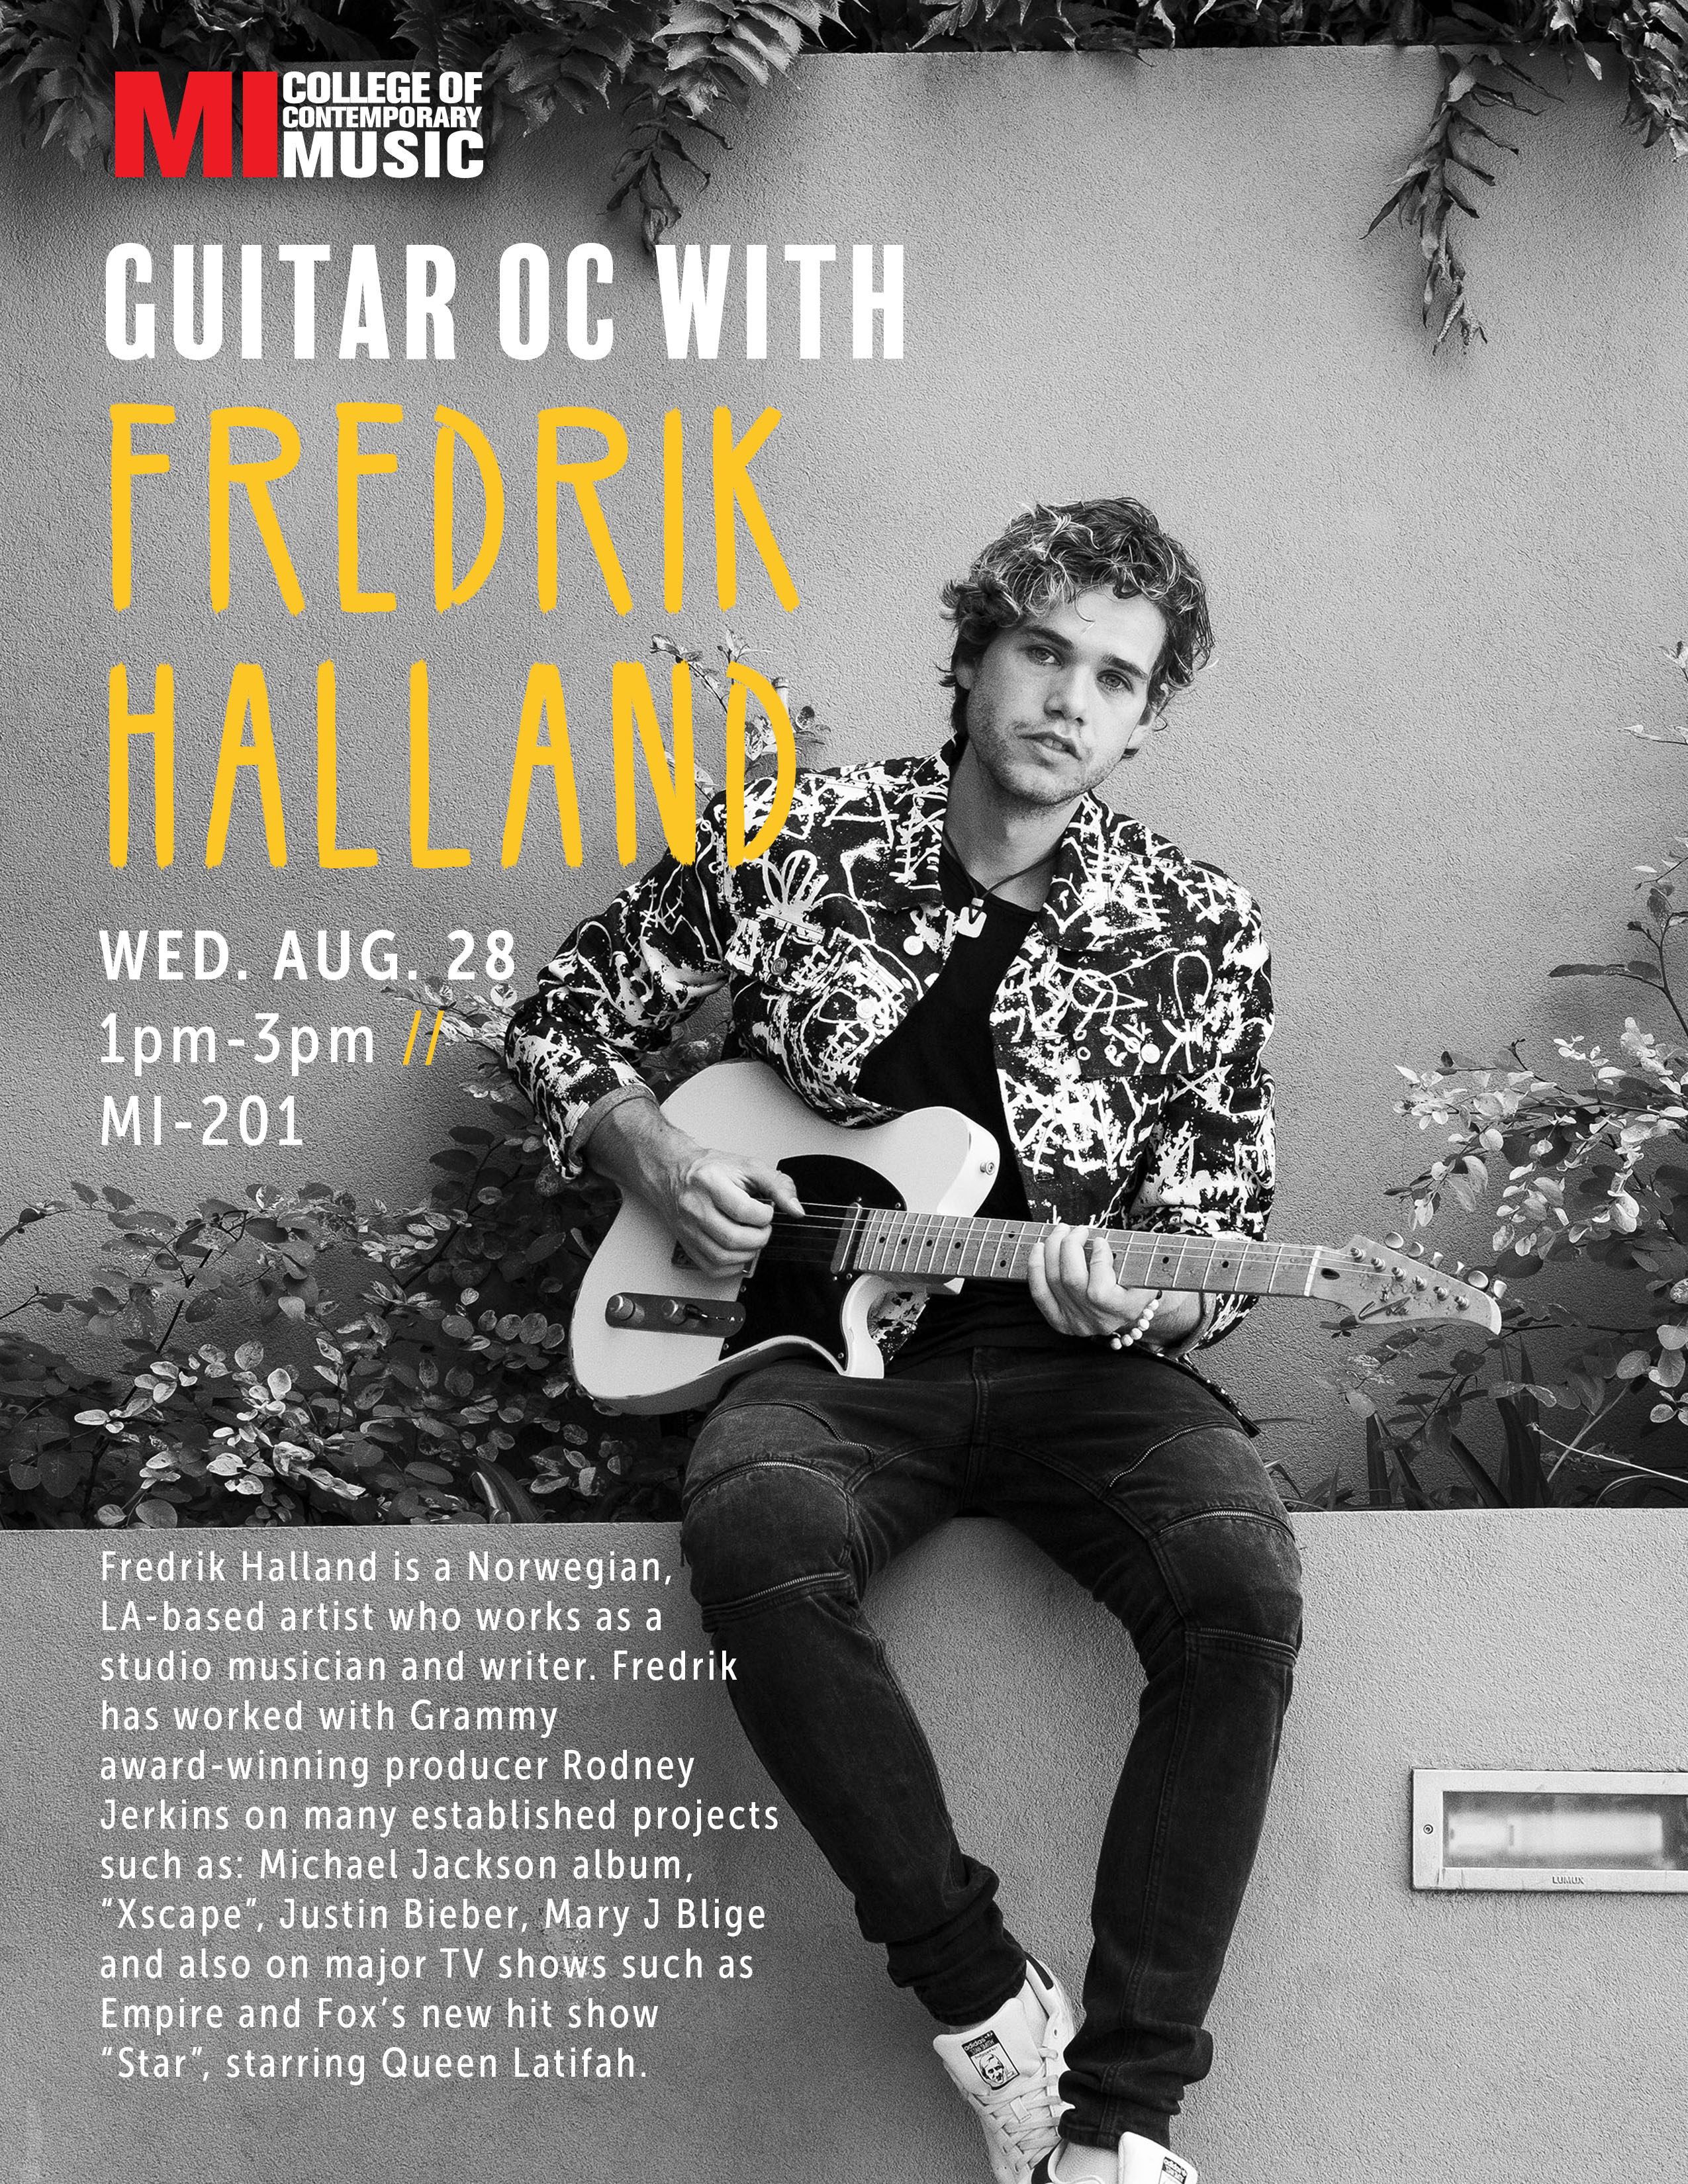 GUITAR OC WITH FREDERIK HALLAND WEDNESDAY, AUGUST 28, 2019, 1 – 3PM